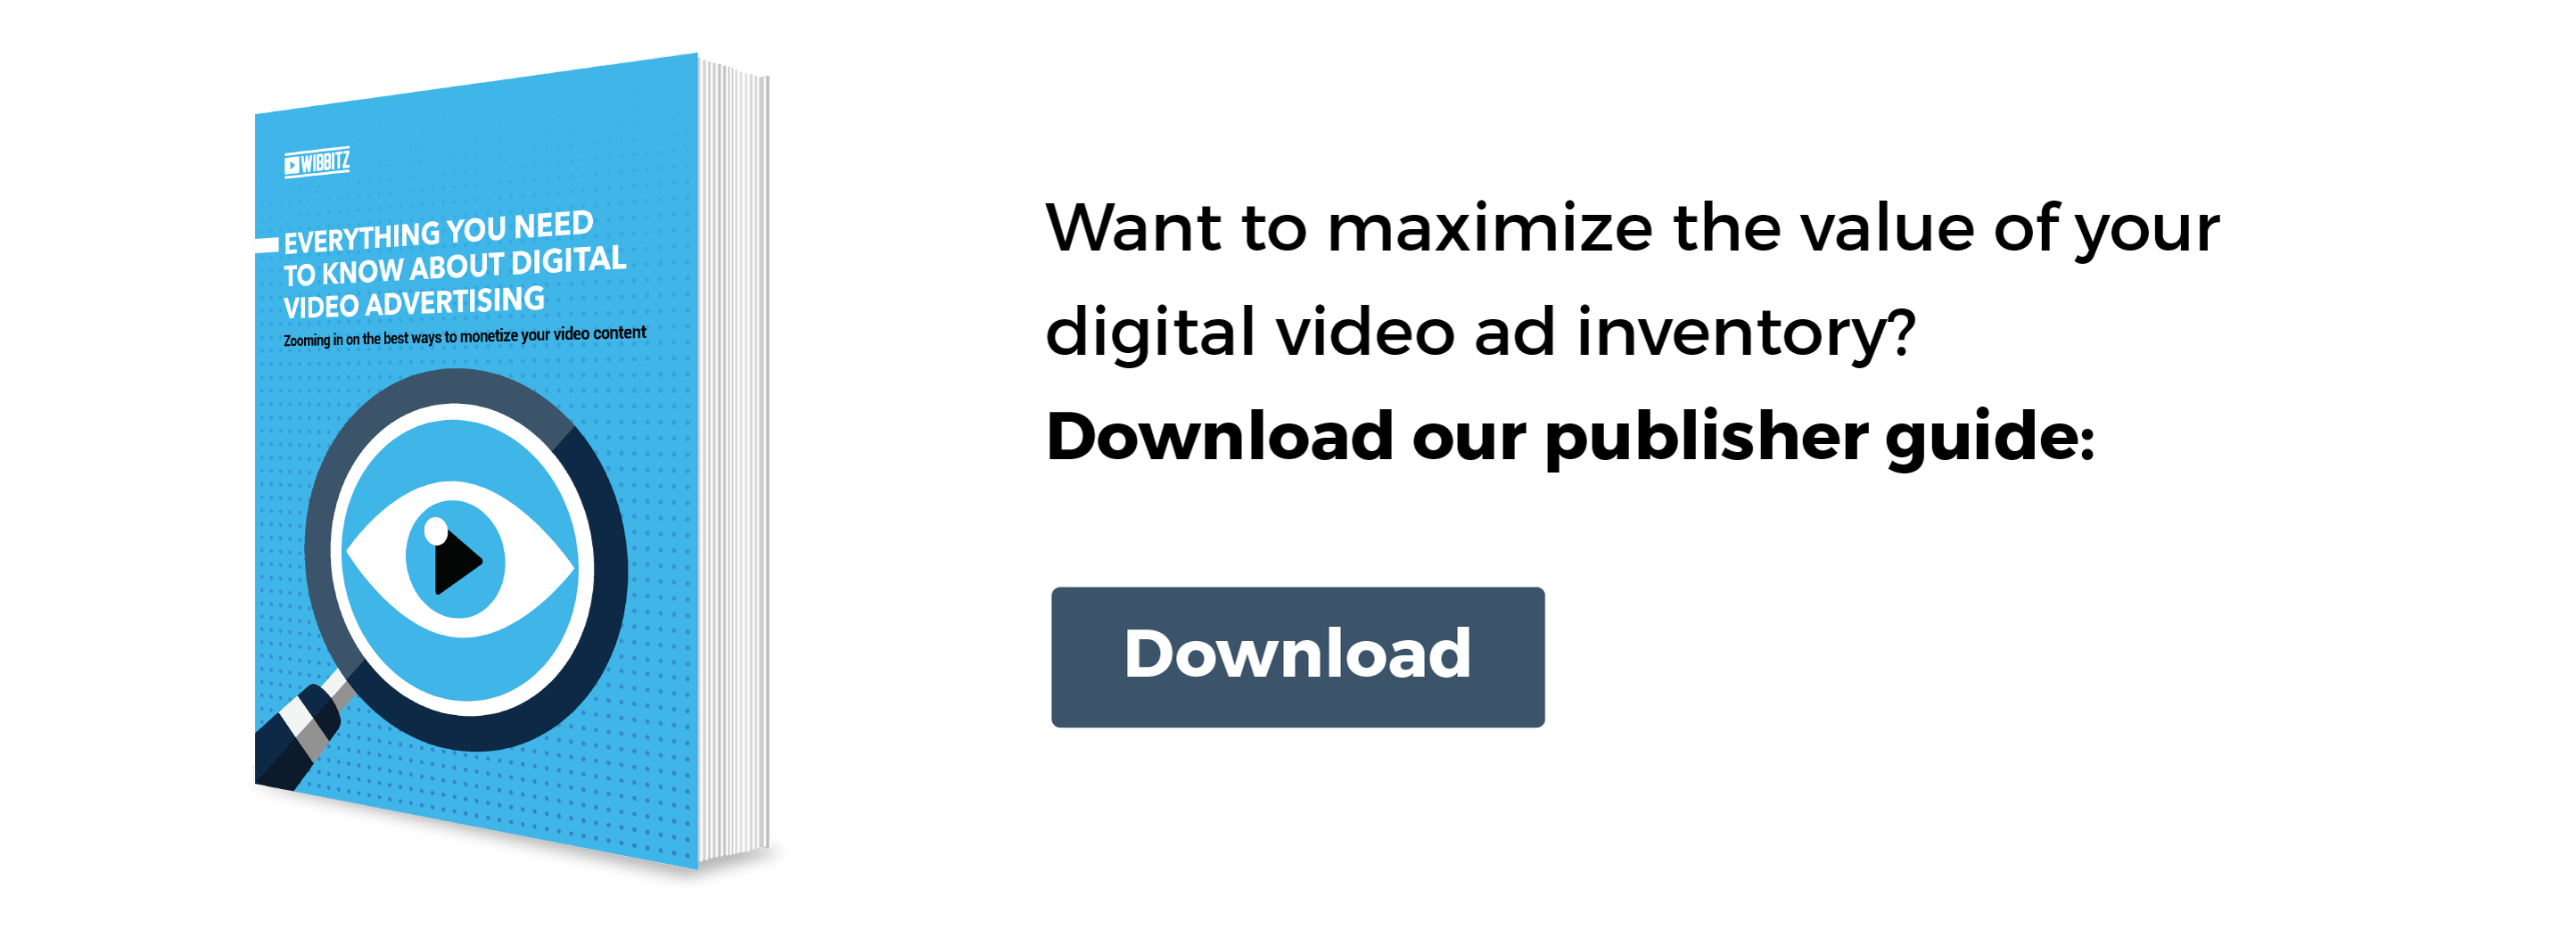 Want to maximize the value of your digital video ad inventory? Download our publisher guide!